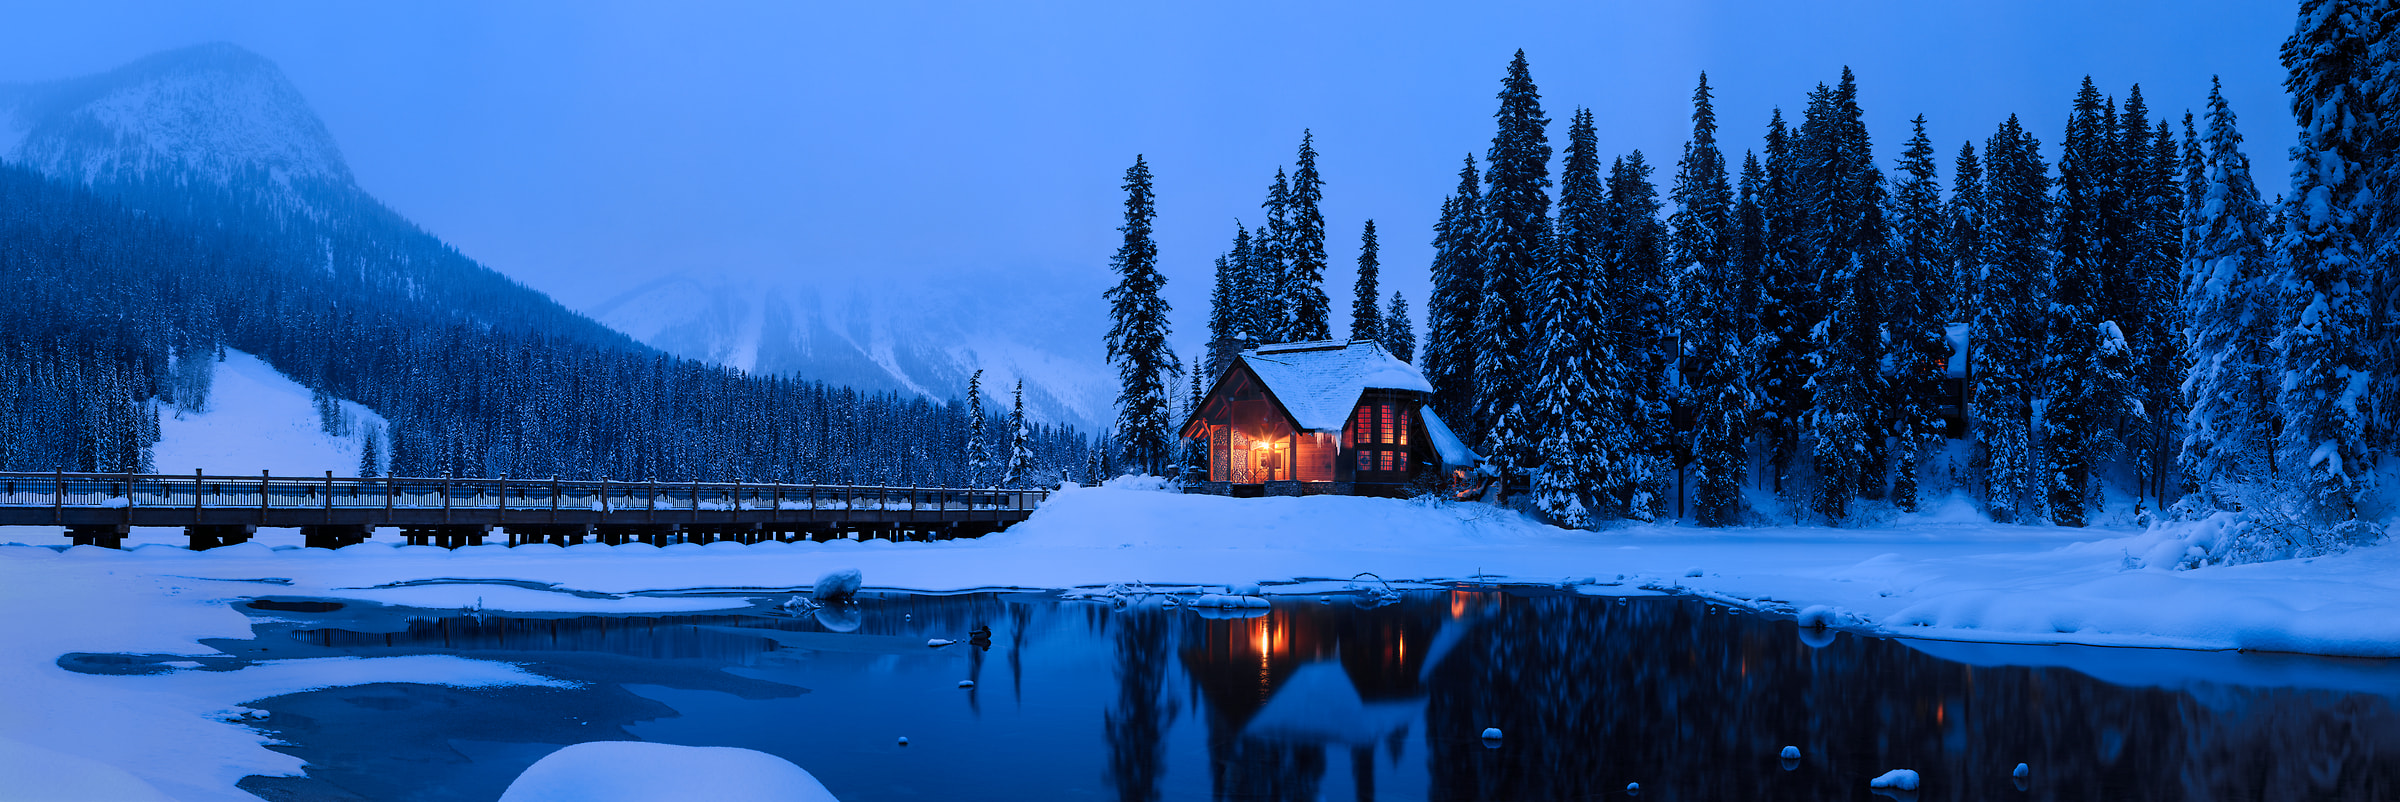 690 megapixels! A very high resolution, large-format VAST photo of a cozy winter scene with a snow covered forest, icy lake, a warm ski cabin in the woods, and snowy mountains; large-format photo print created at twilight by Scott Dimond in Yoho National Park, British Columbia, Canada